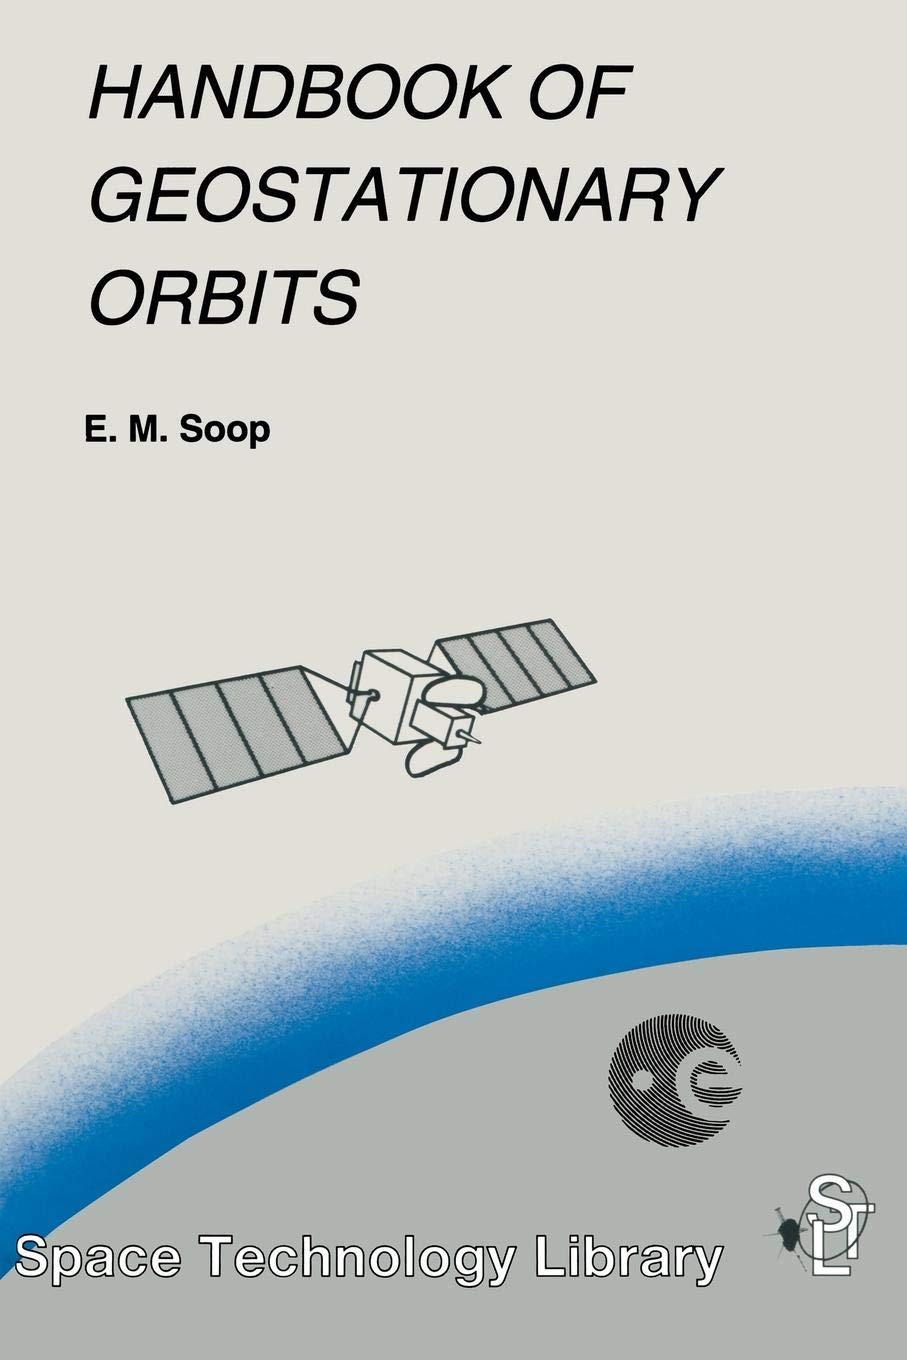 Handbook of Geostationary Orbits (Space Technology Library) (Space Technology Library (3) Band 3)